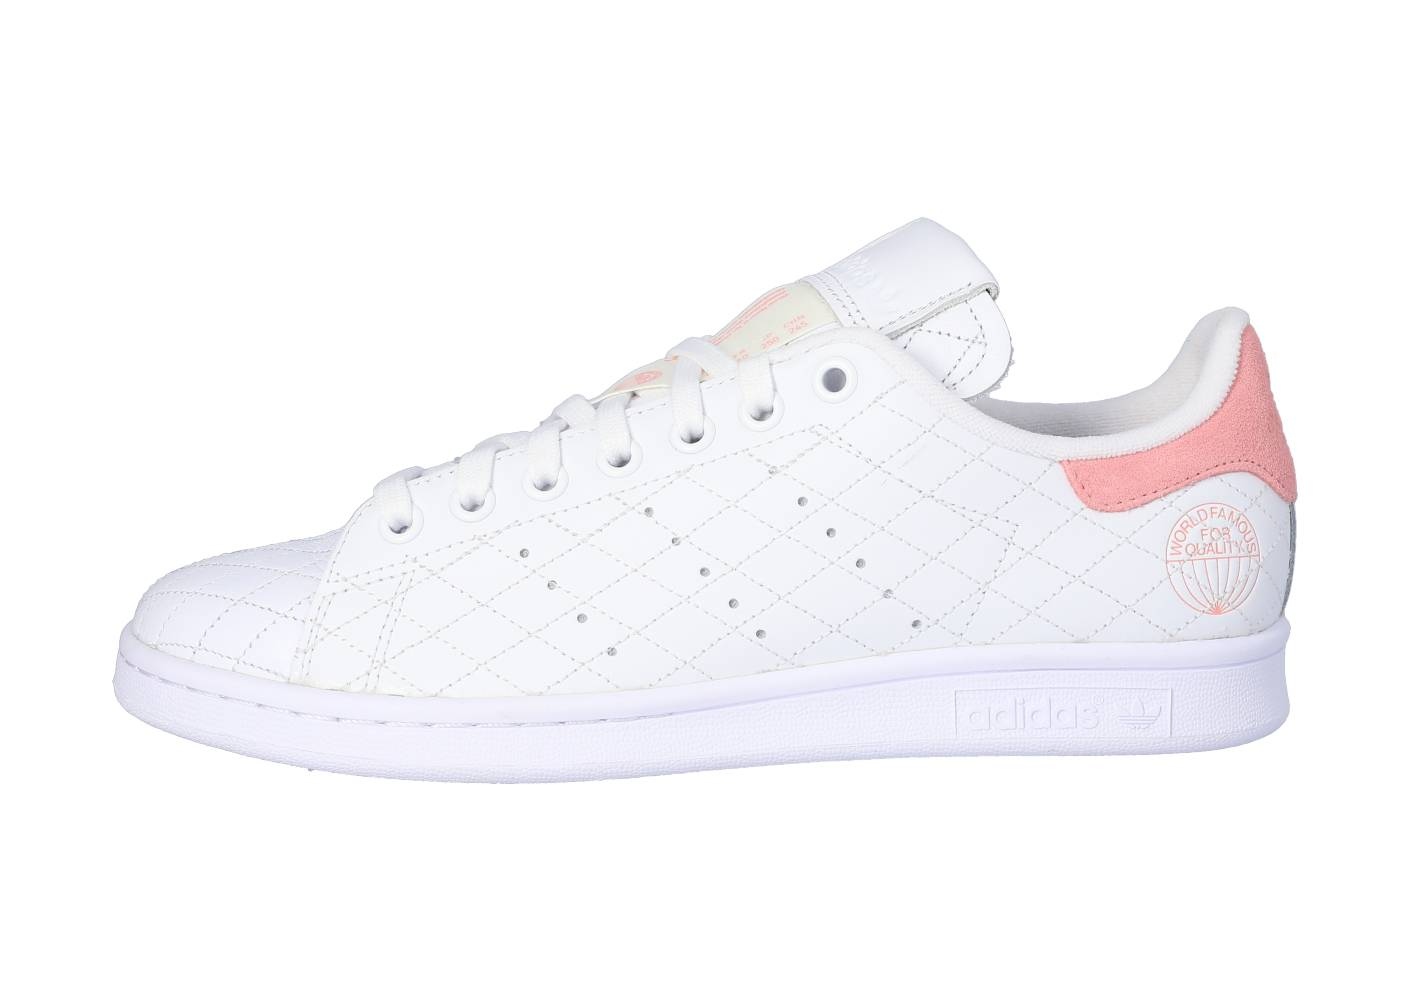 adidas Femme Stan Smith Cloud White Glory Pink Tennis 36 2/3